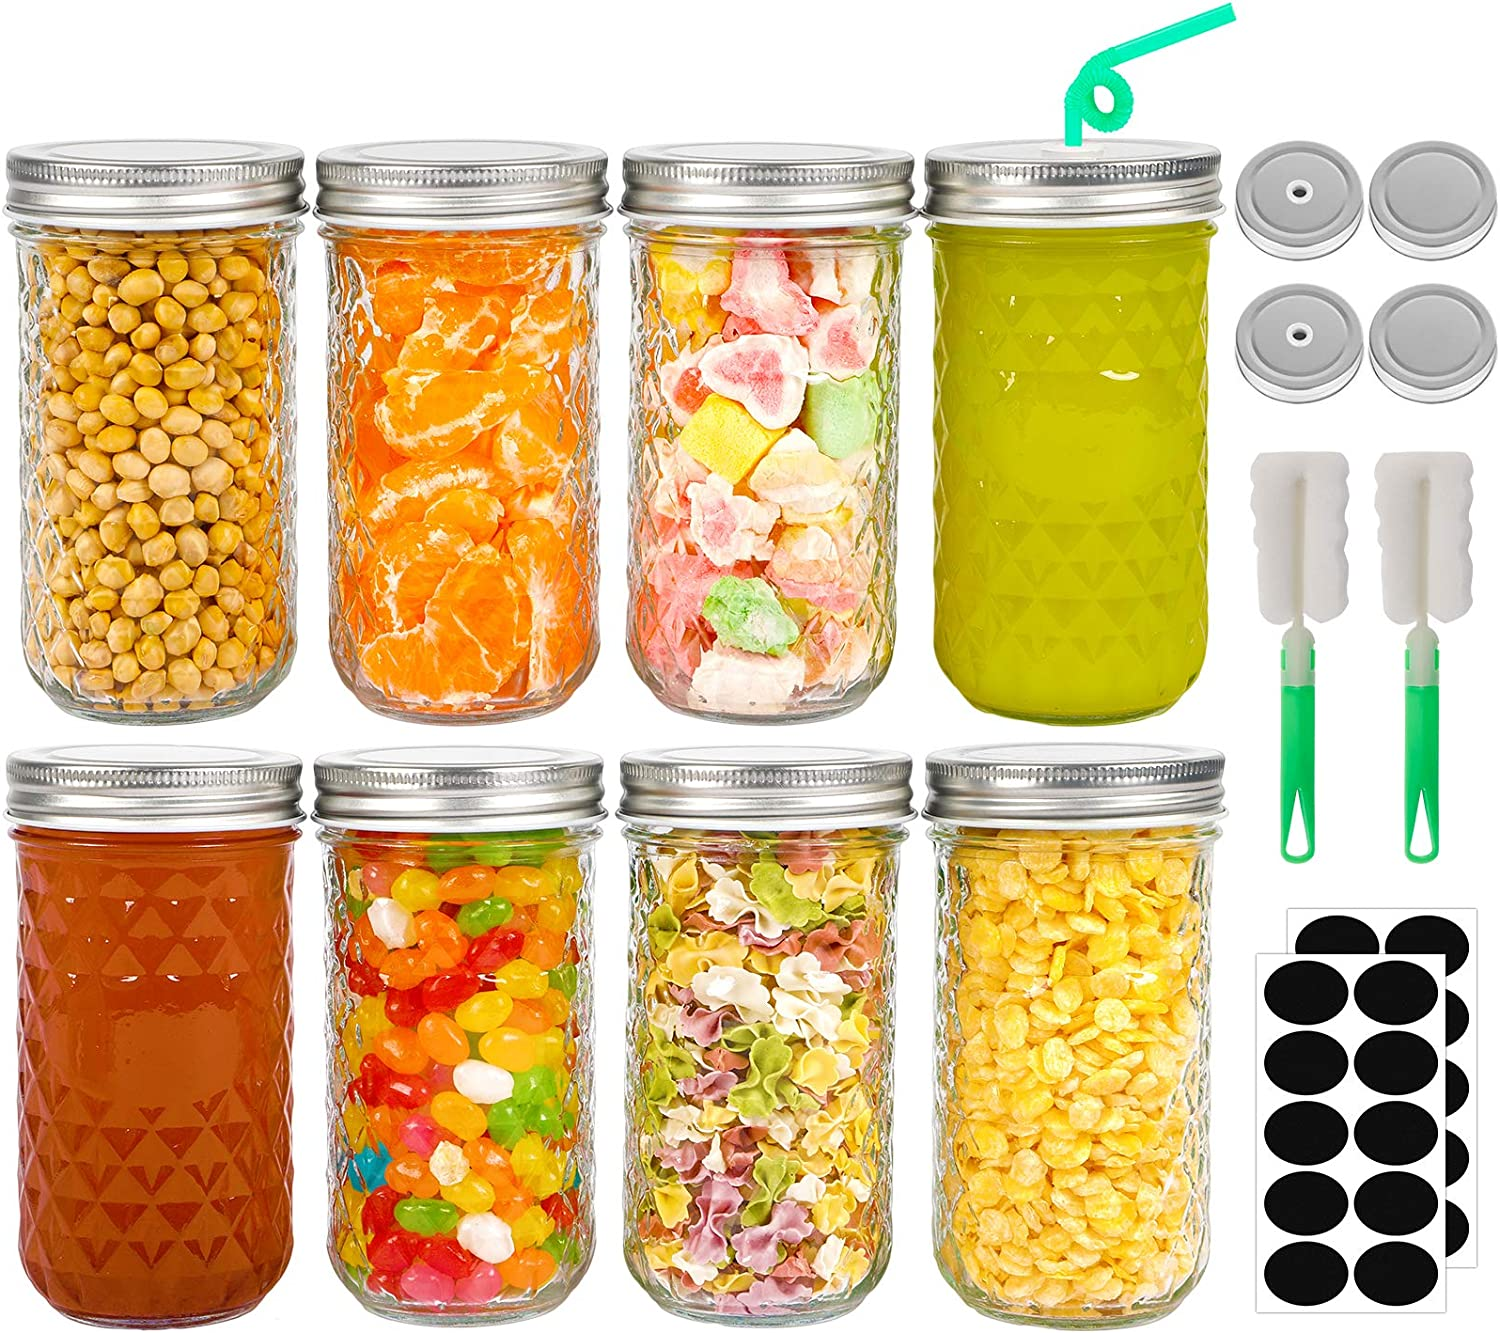 Smoothies Candy Wedding Favors Salad Spices Mason Jars 12oz Wide Mouth Glass Canning Jars with Lids Set of 8 Decoration Fruits and Vegetable Jam Jars Ideal for Jelly